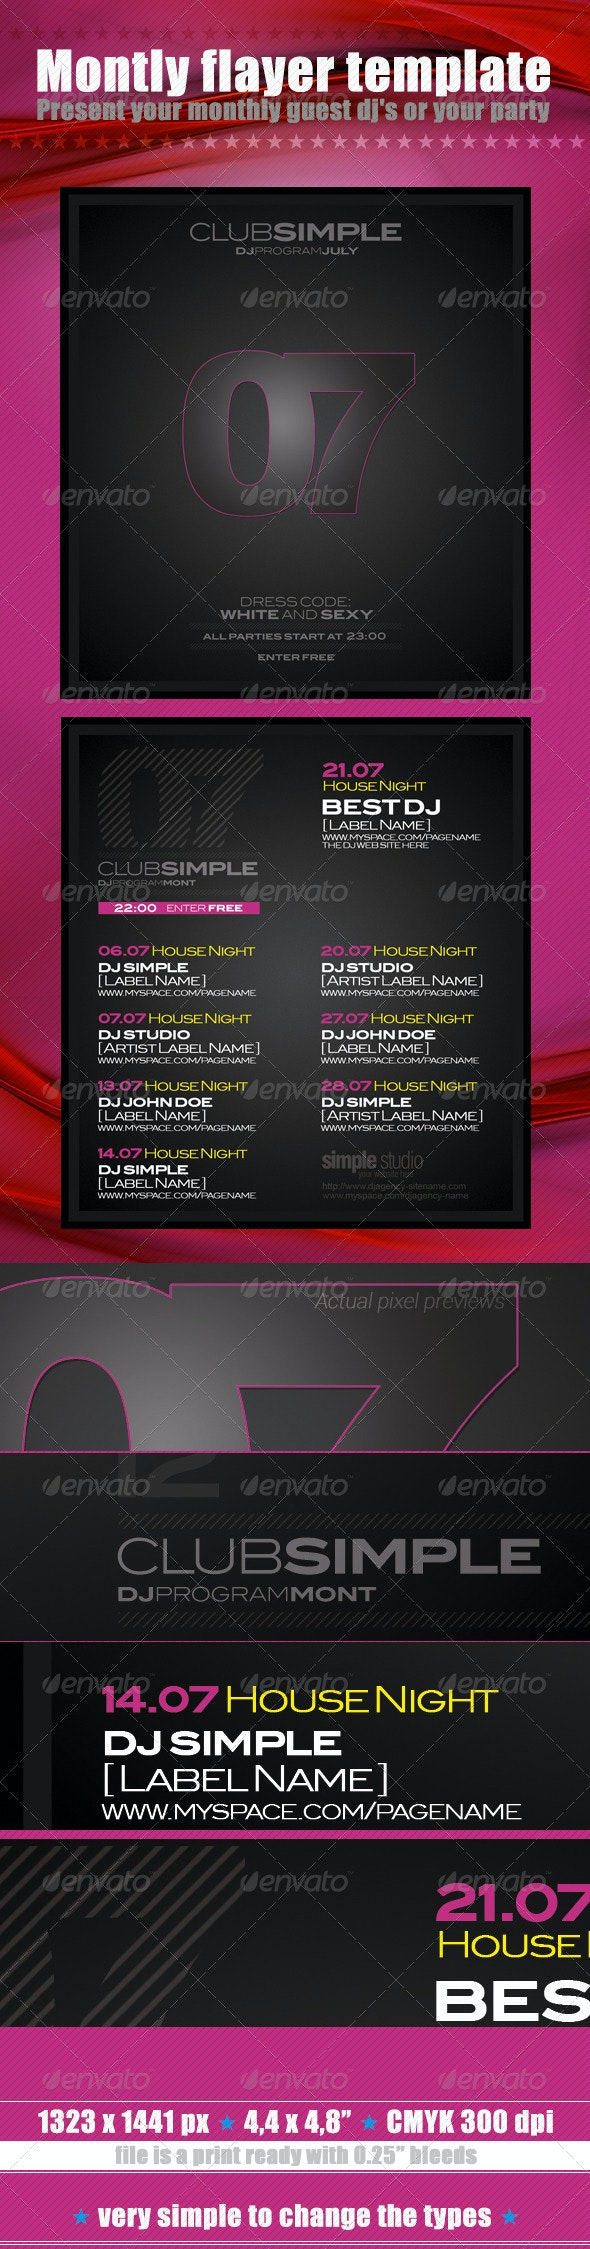 07 Montly Flayer Template - Clubs & Parties Events